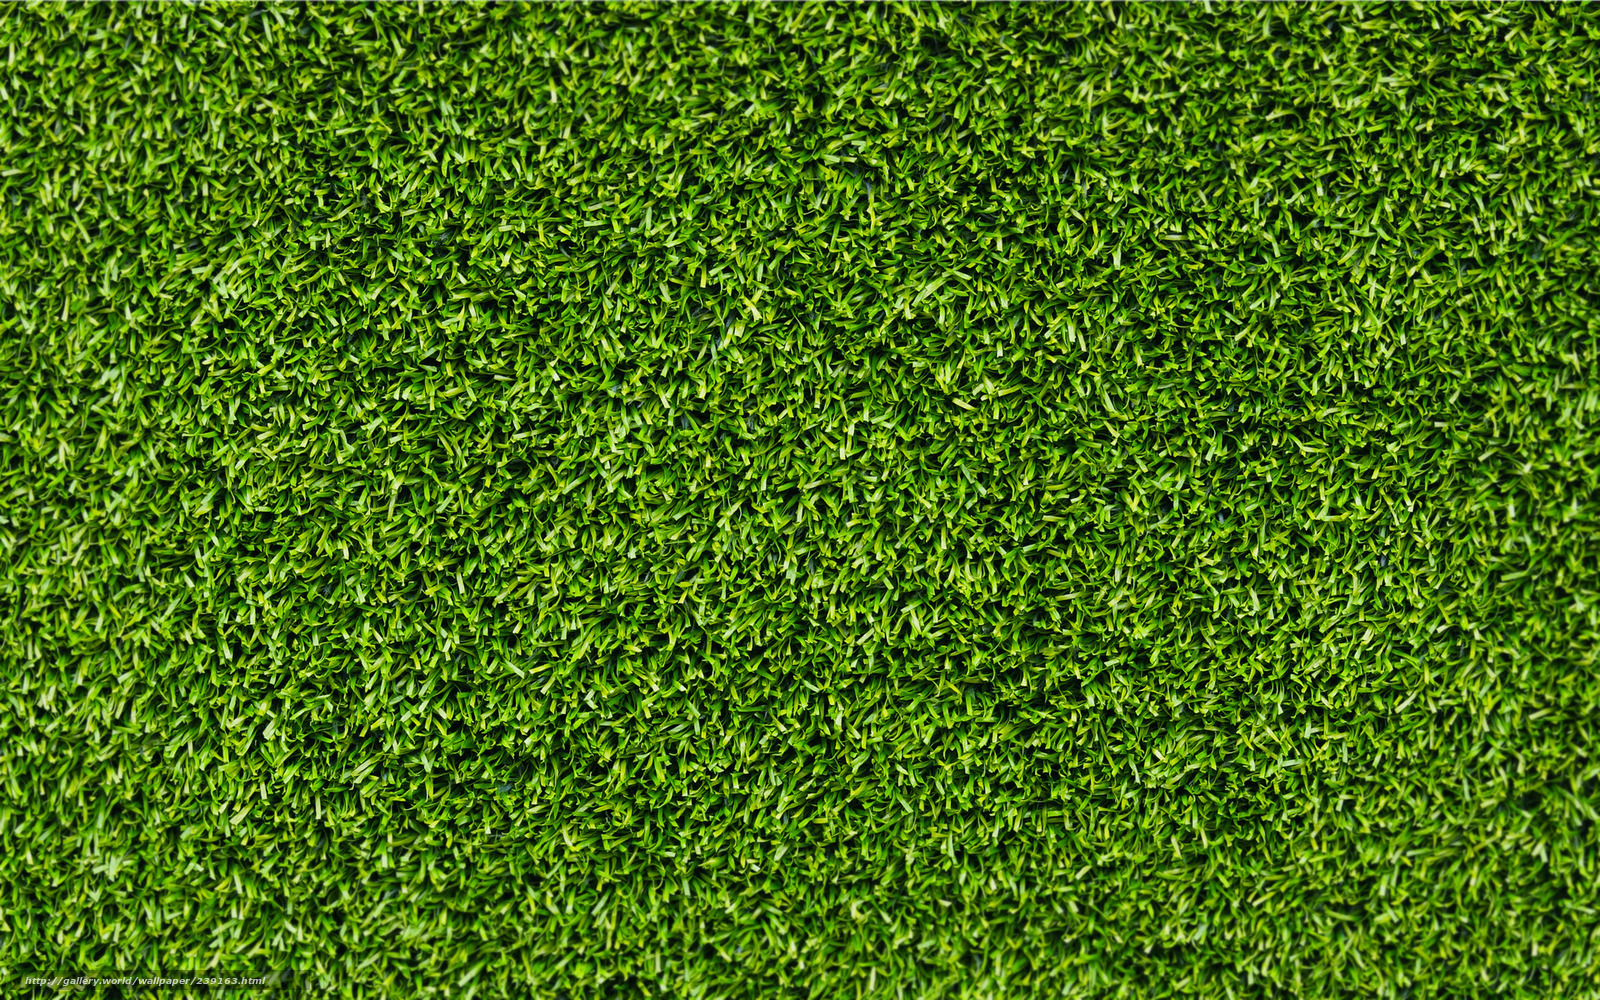 Download wallpaper grass background wallpaper close up photo pictures for your desktop free - Foto wallpaper ...